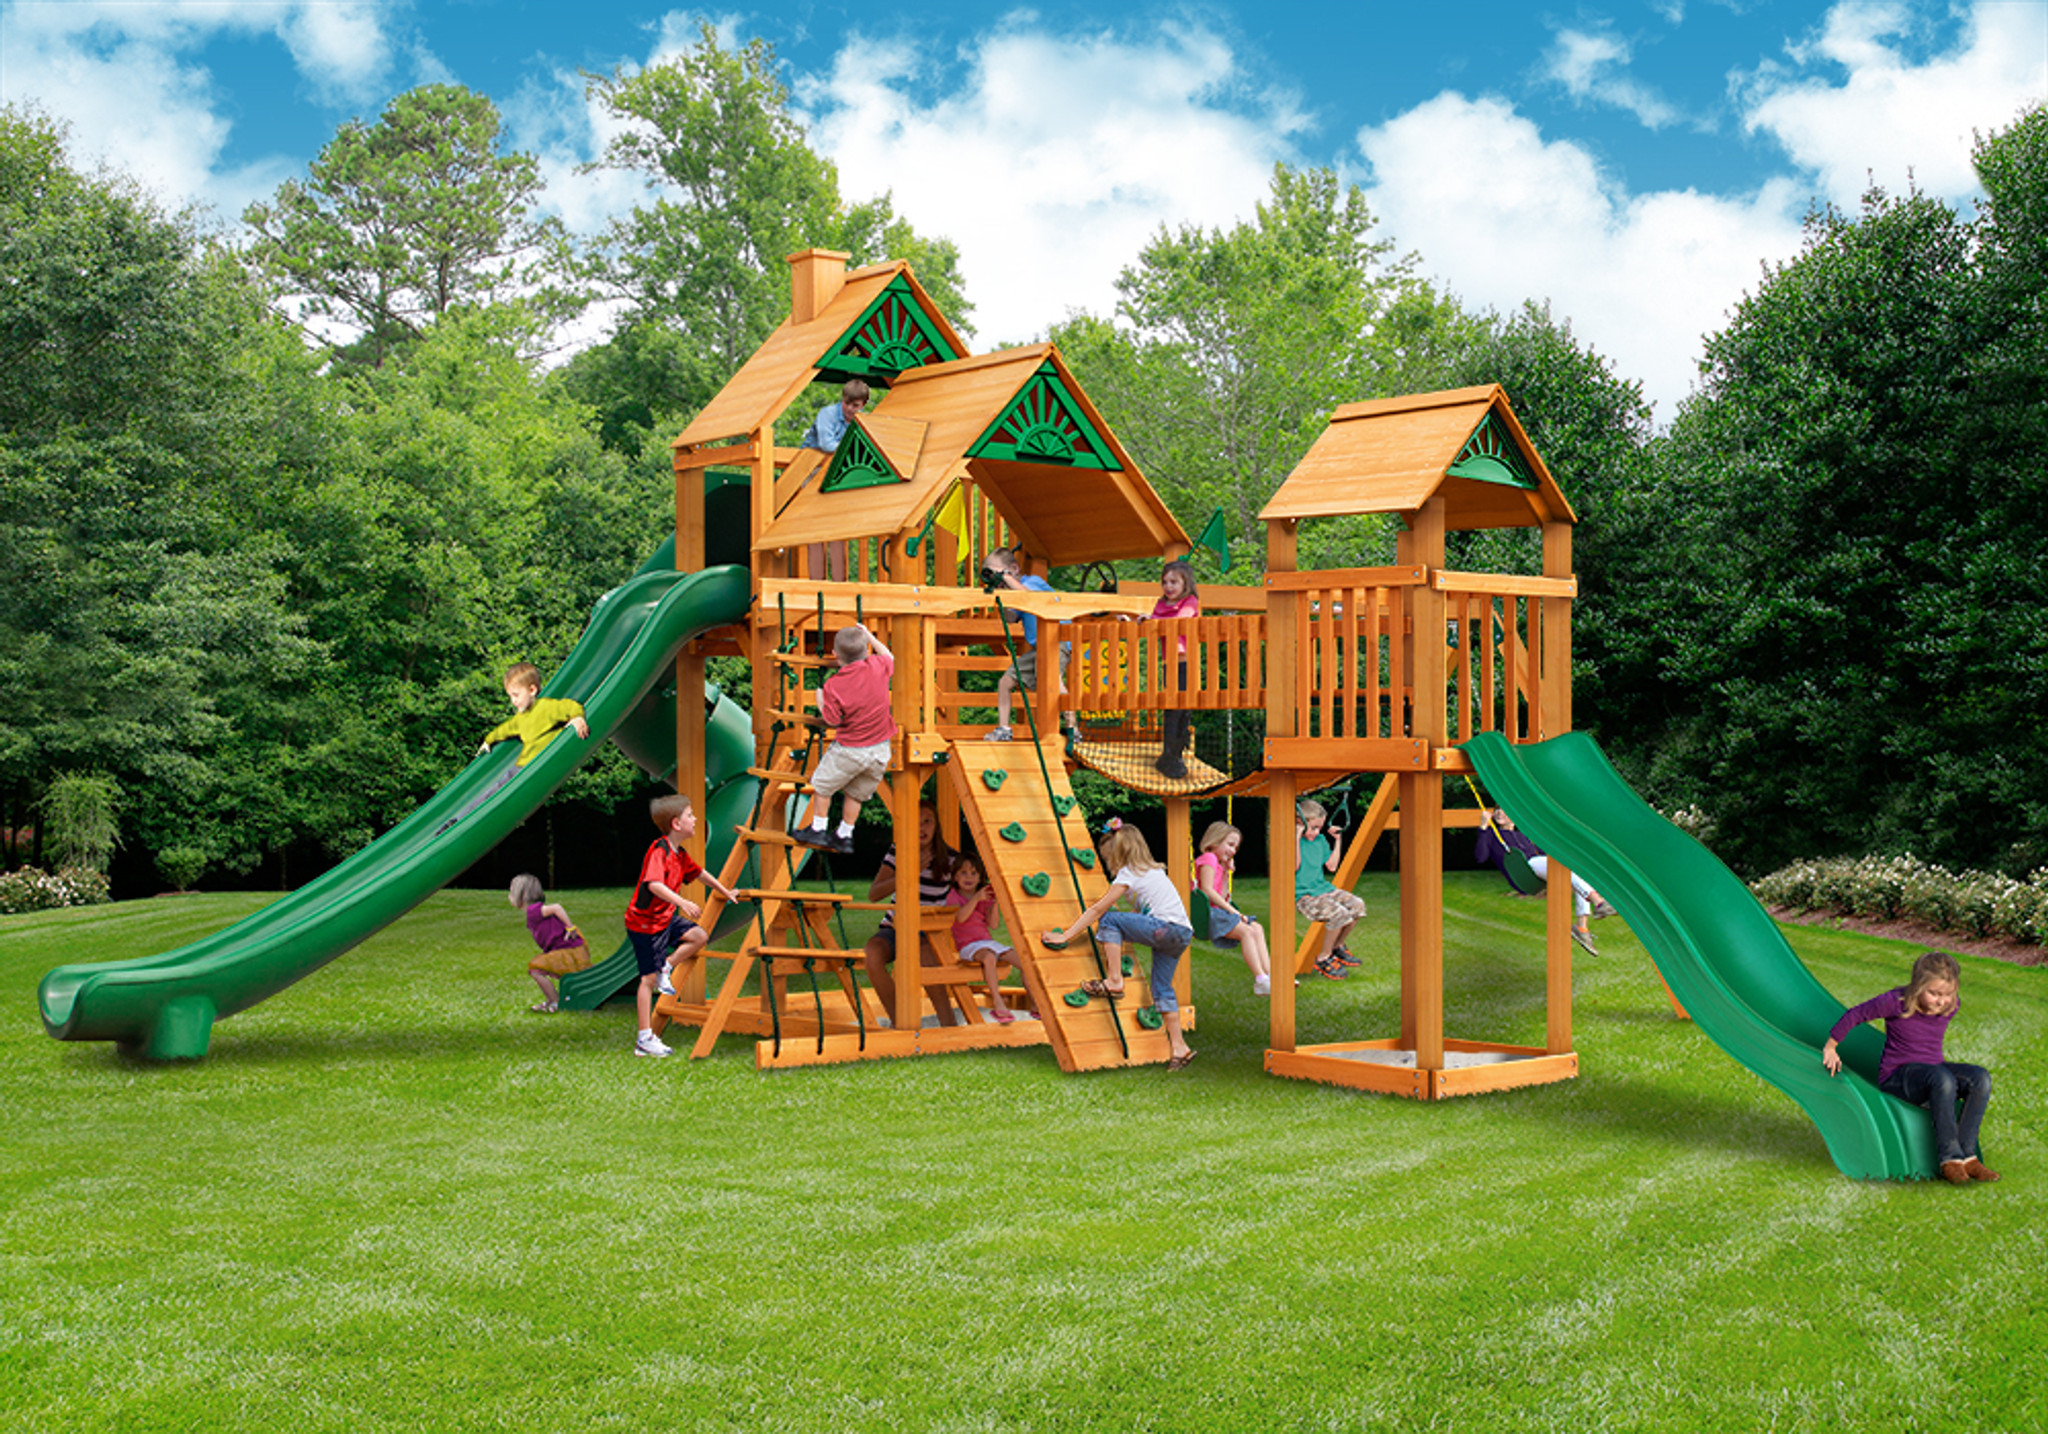 Outside front view of Treasure Trove II Play Set from Playnation